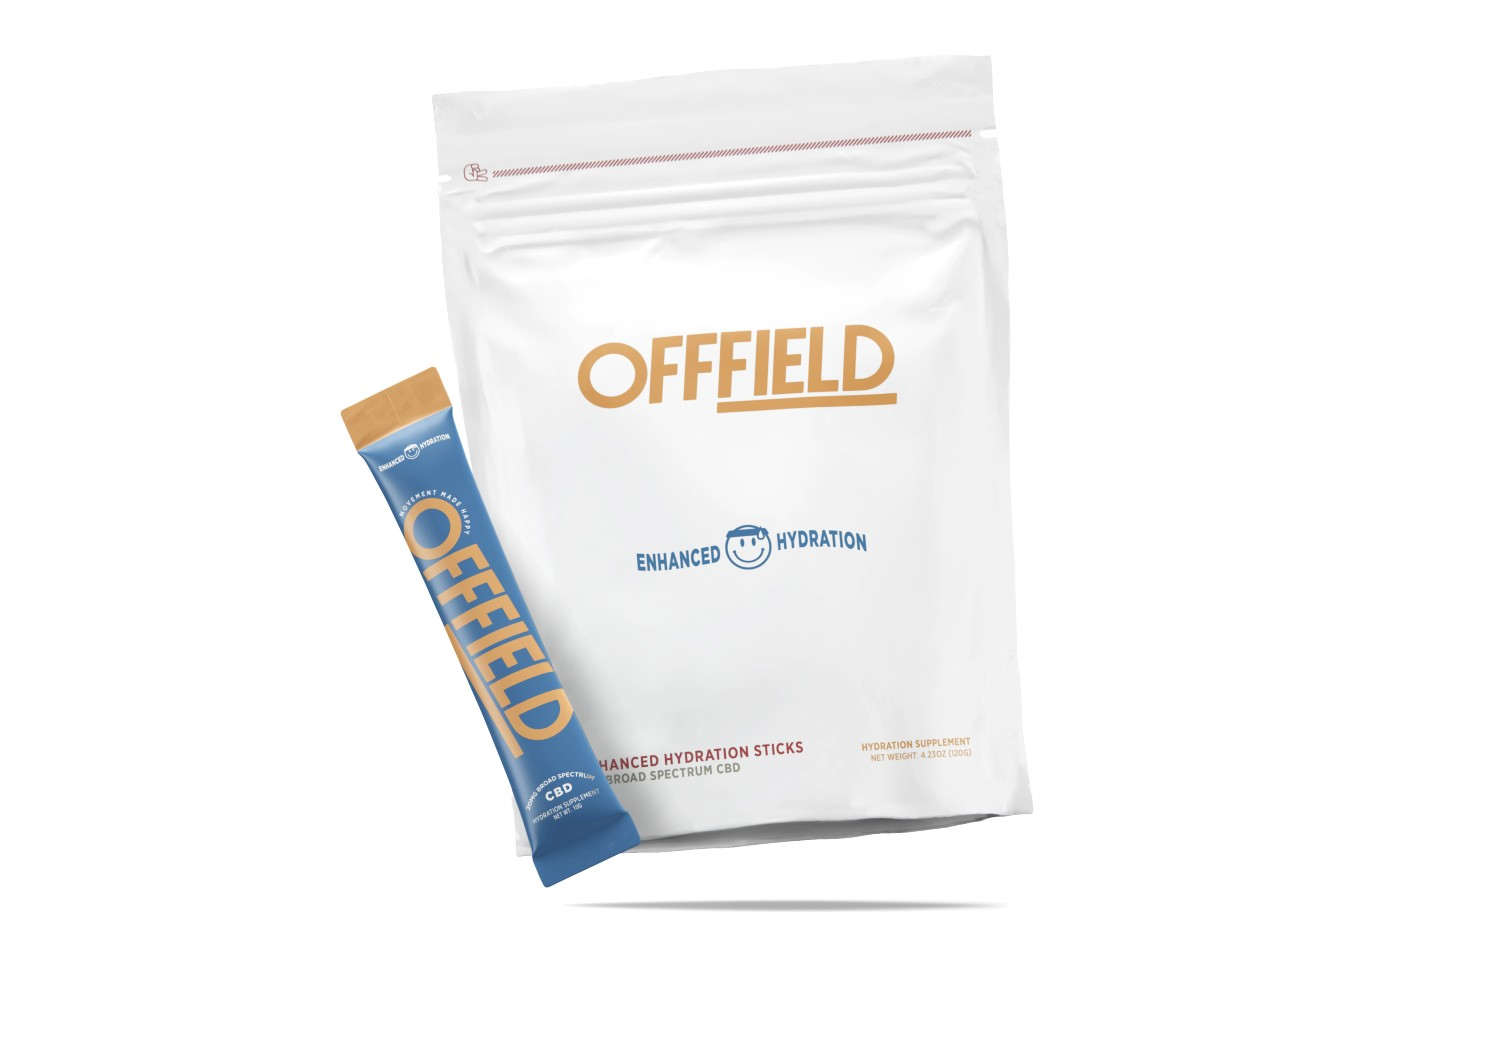 offfield-product.jpg